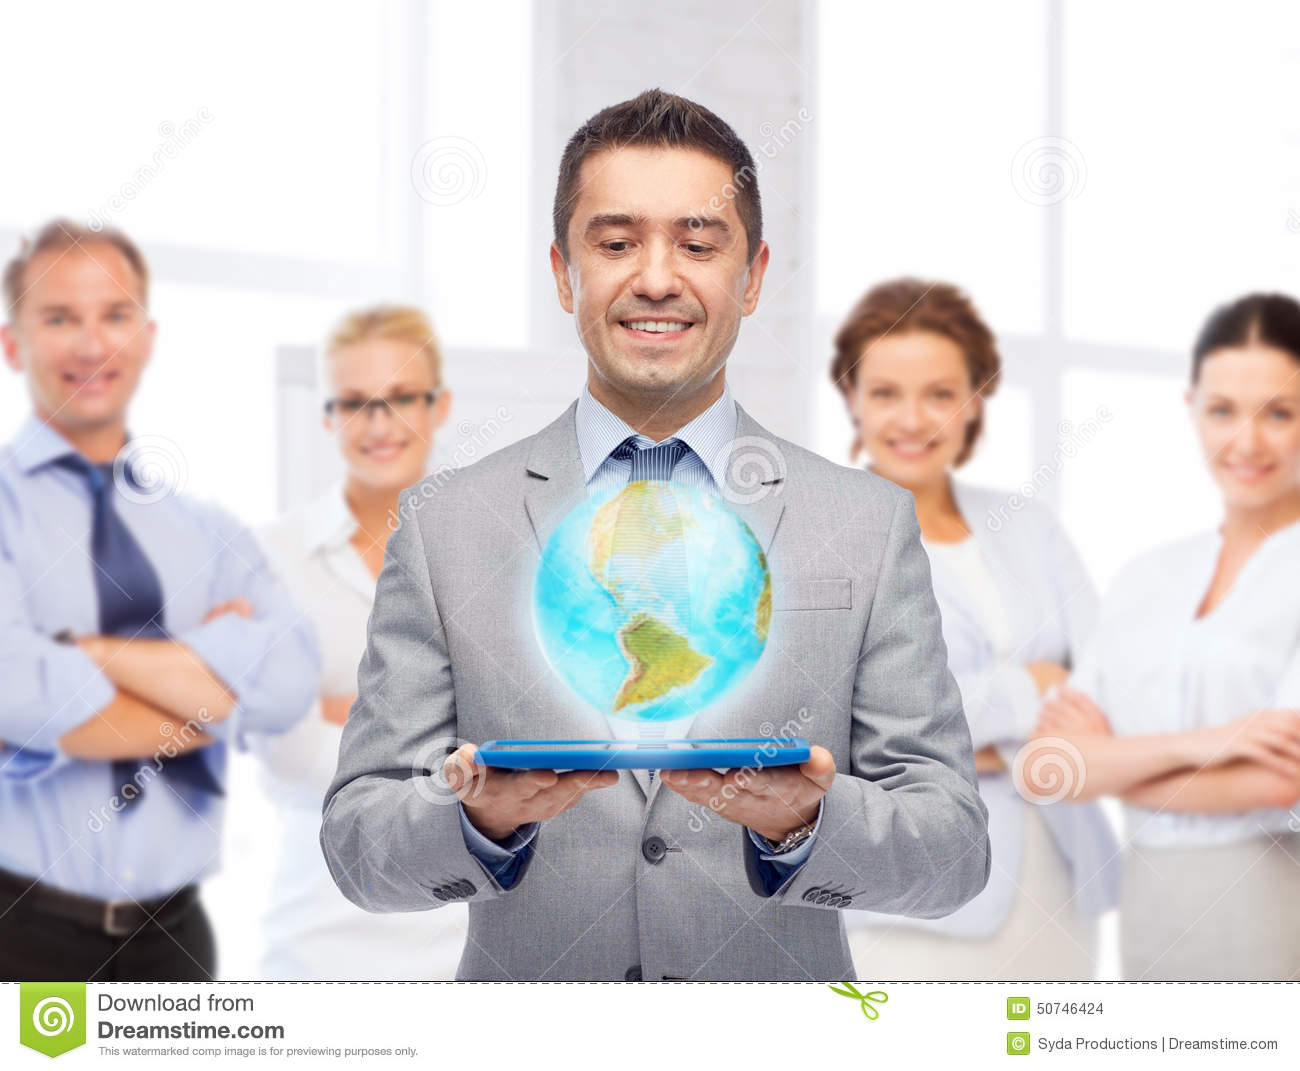 Technology Management Image: Happy Businessman In Suit Holding Tablet Pc Stock Photo